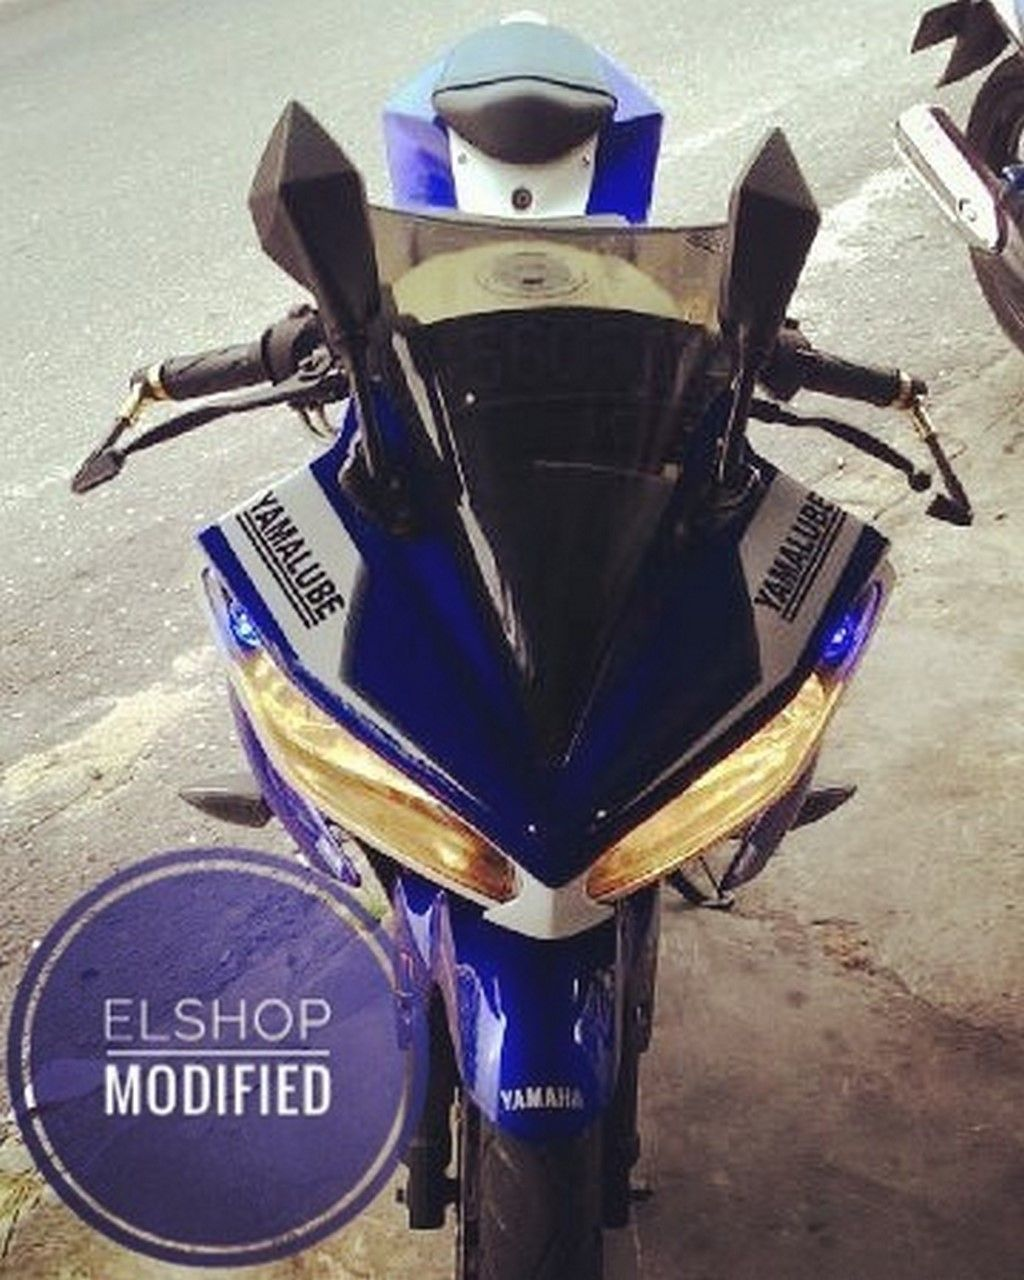 Yamaha R15 by Elshop Modifed not to be mistaken for R15 v3 0